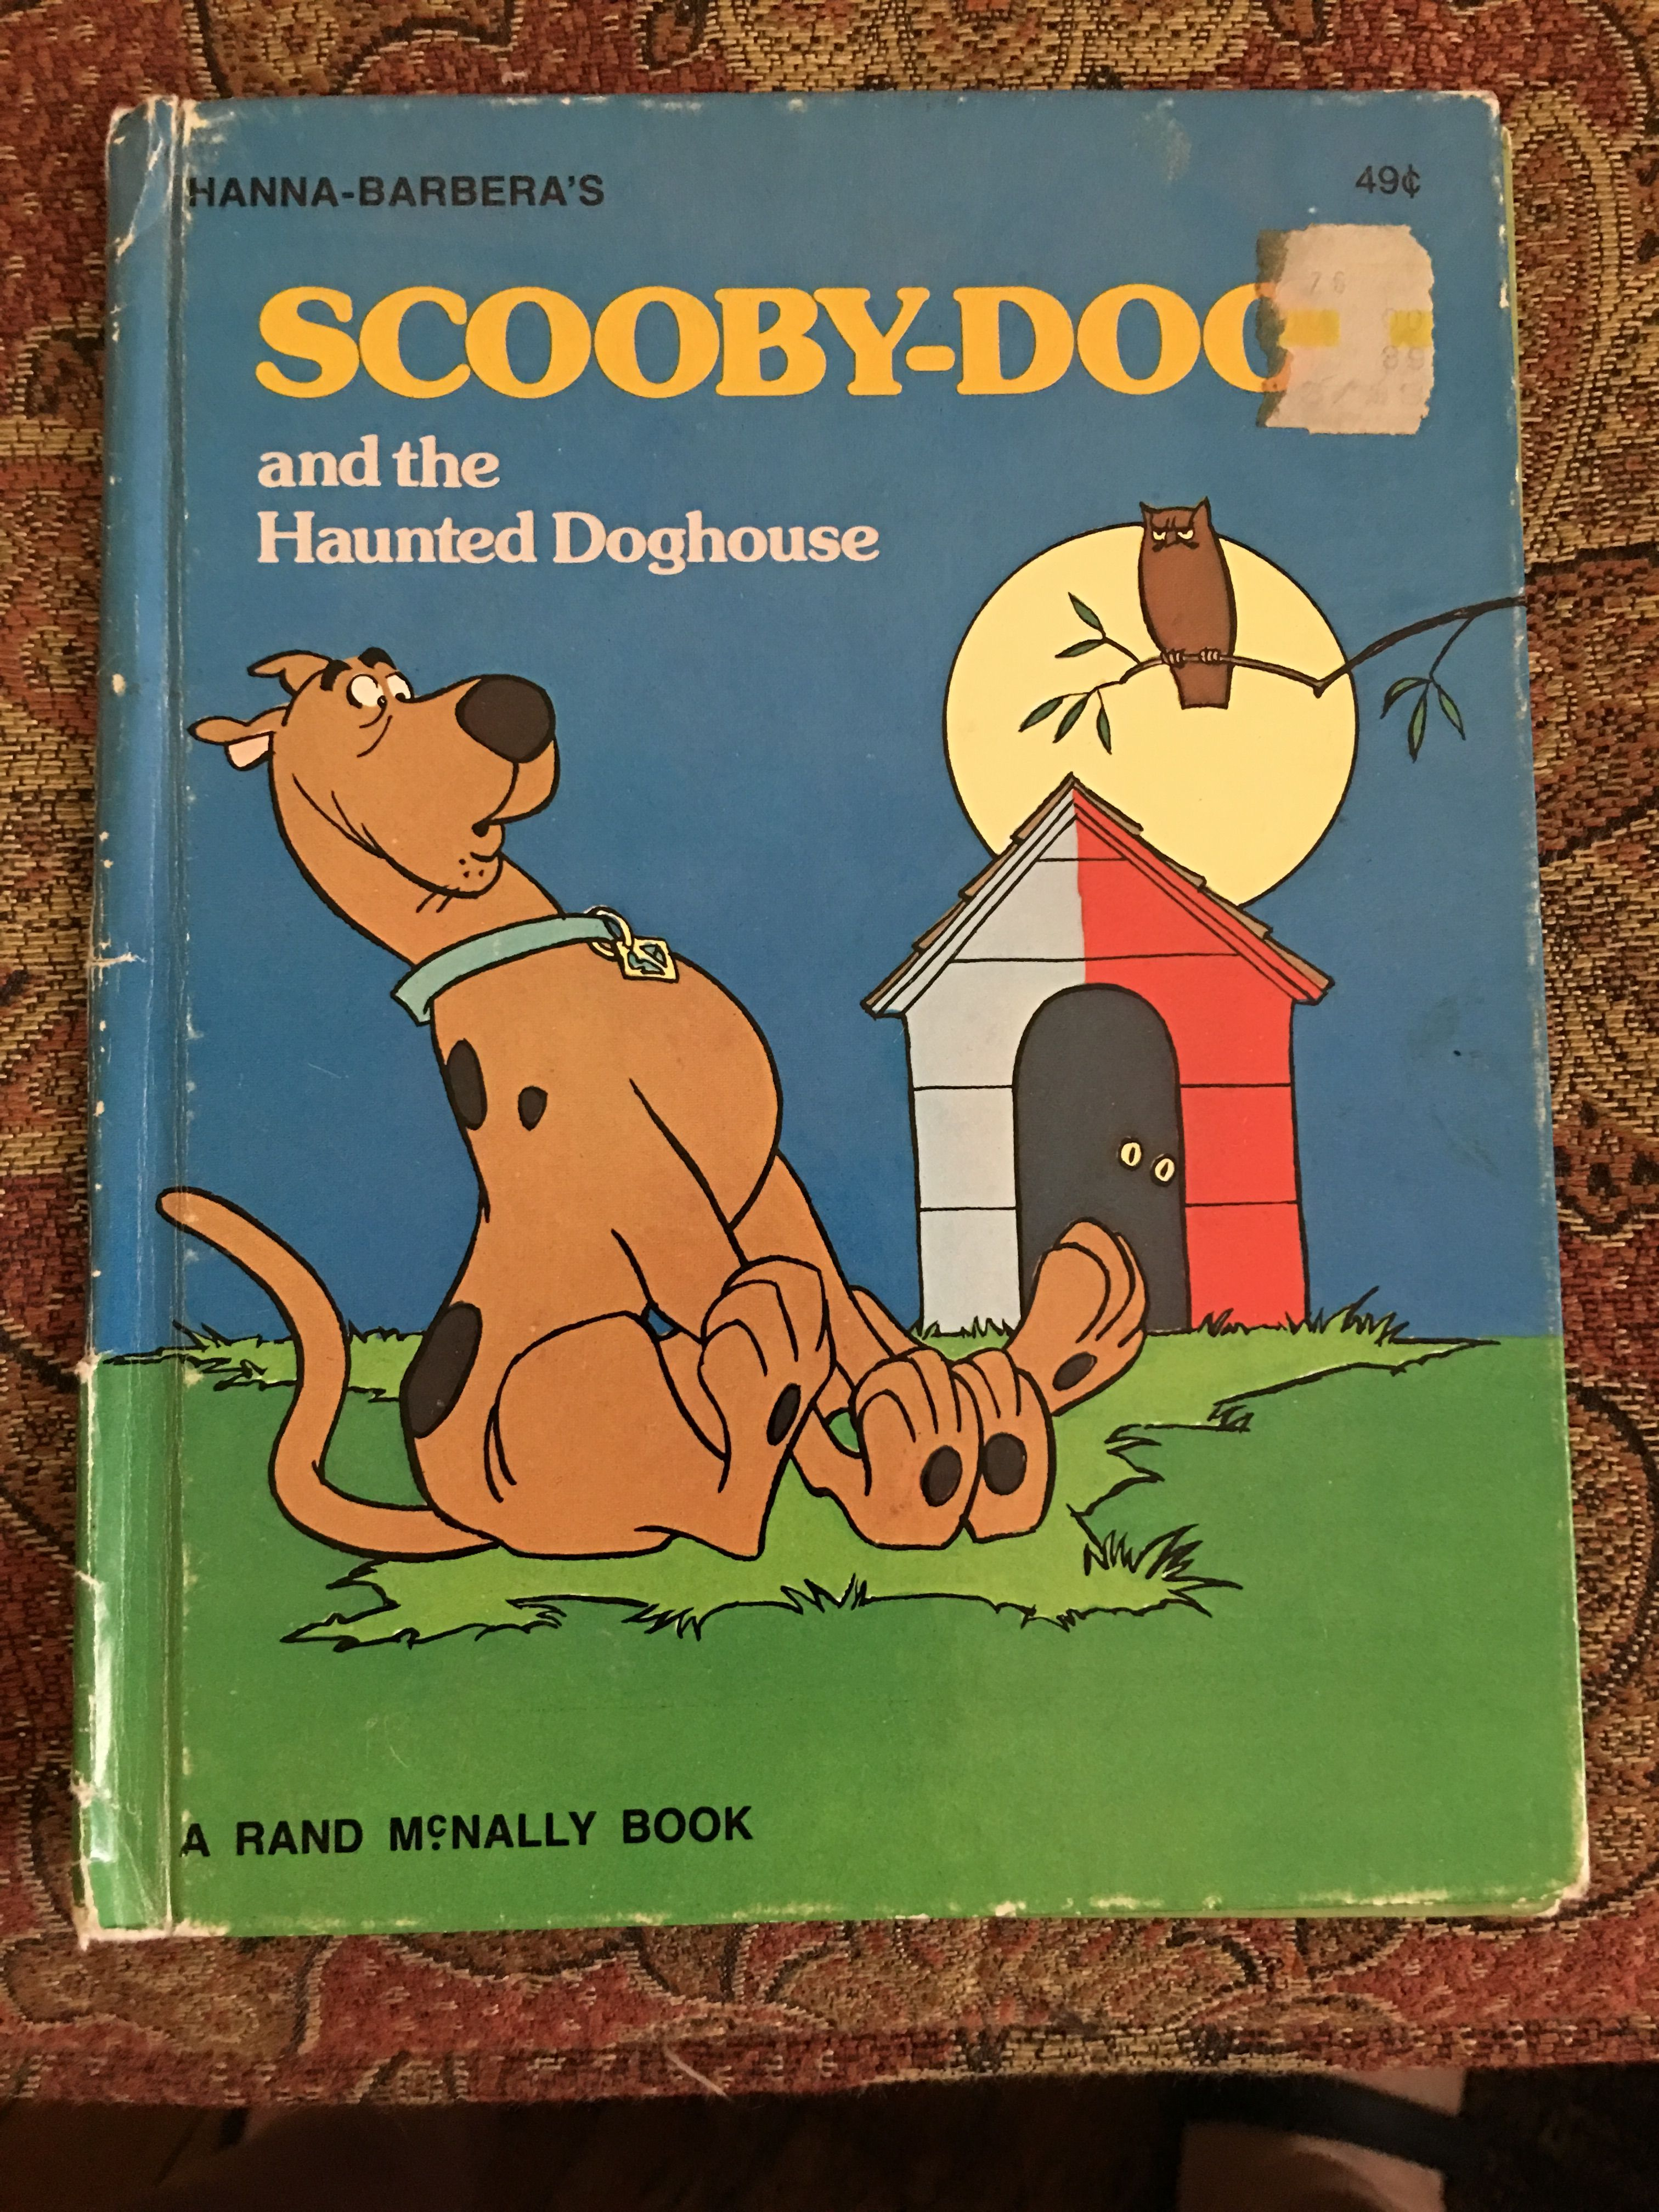 Hannabarberas scoobydoo and the haunted doghouse 1975